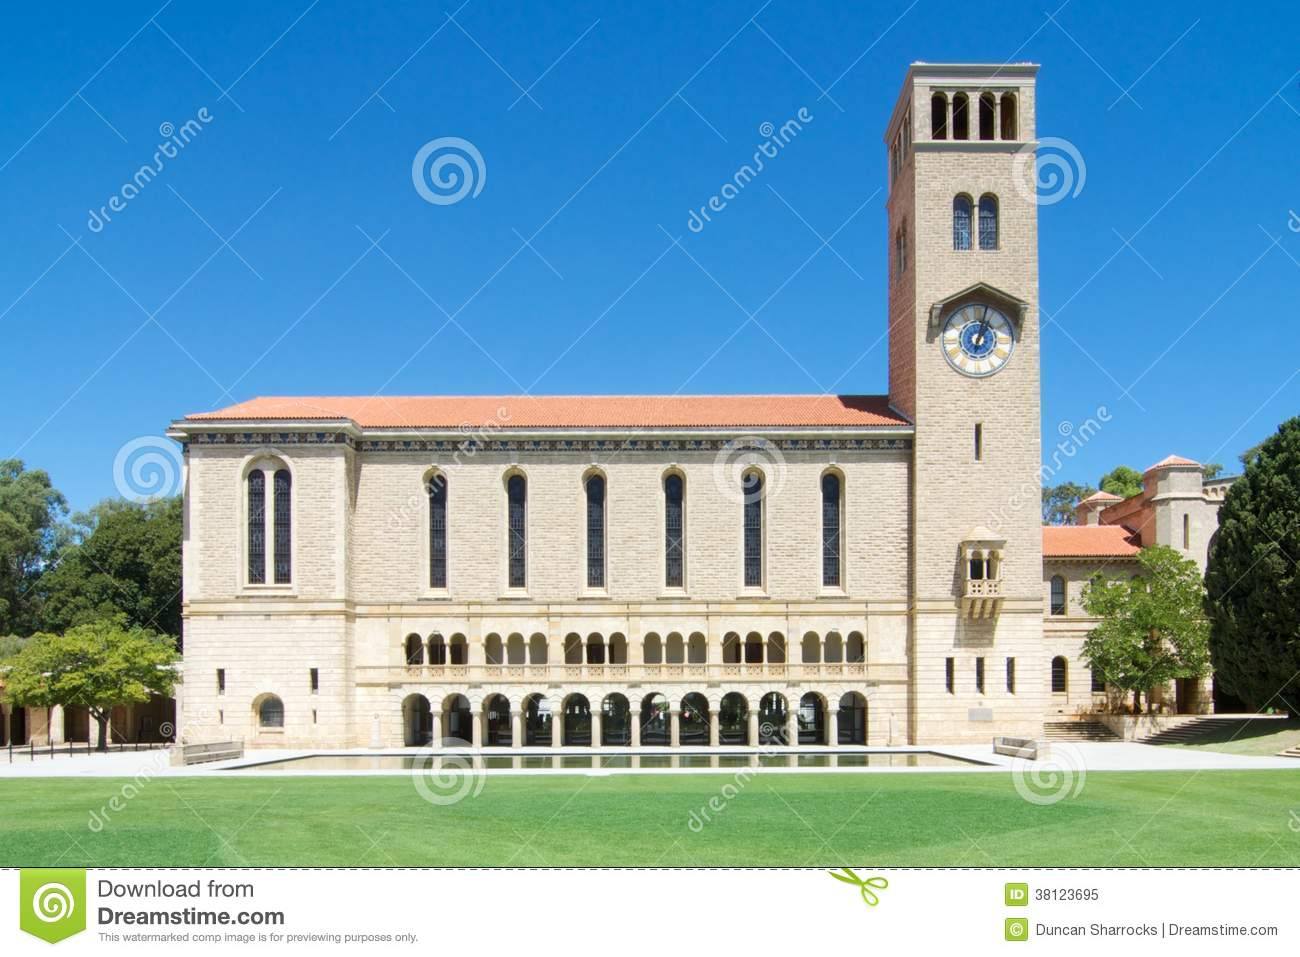 Winthrop Hall And Clock Tower University Of Western Australia.